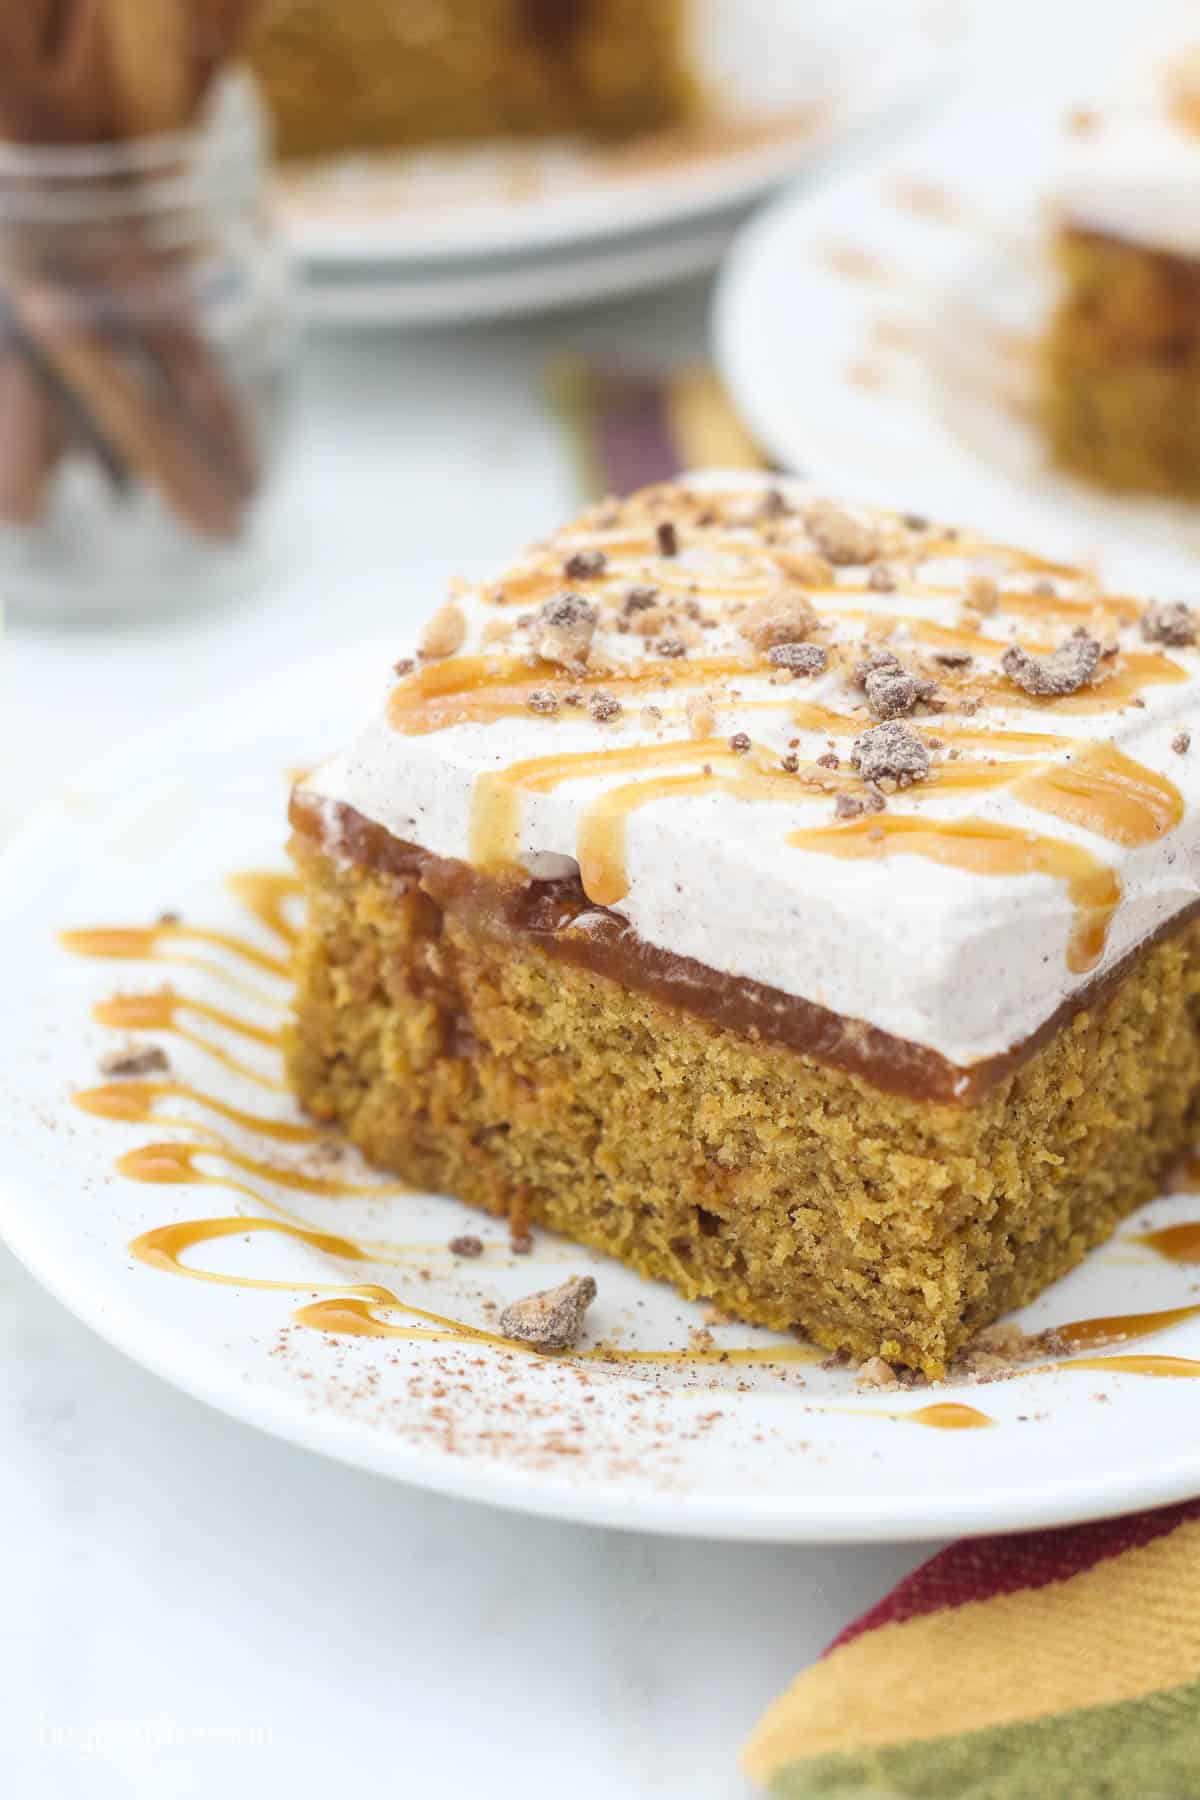 An overhead shot of a slice of pumpkin cake showing the caramel drizzle and crushed toffee on top